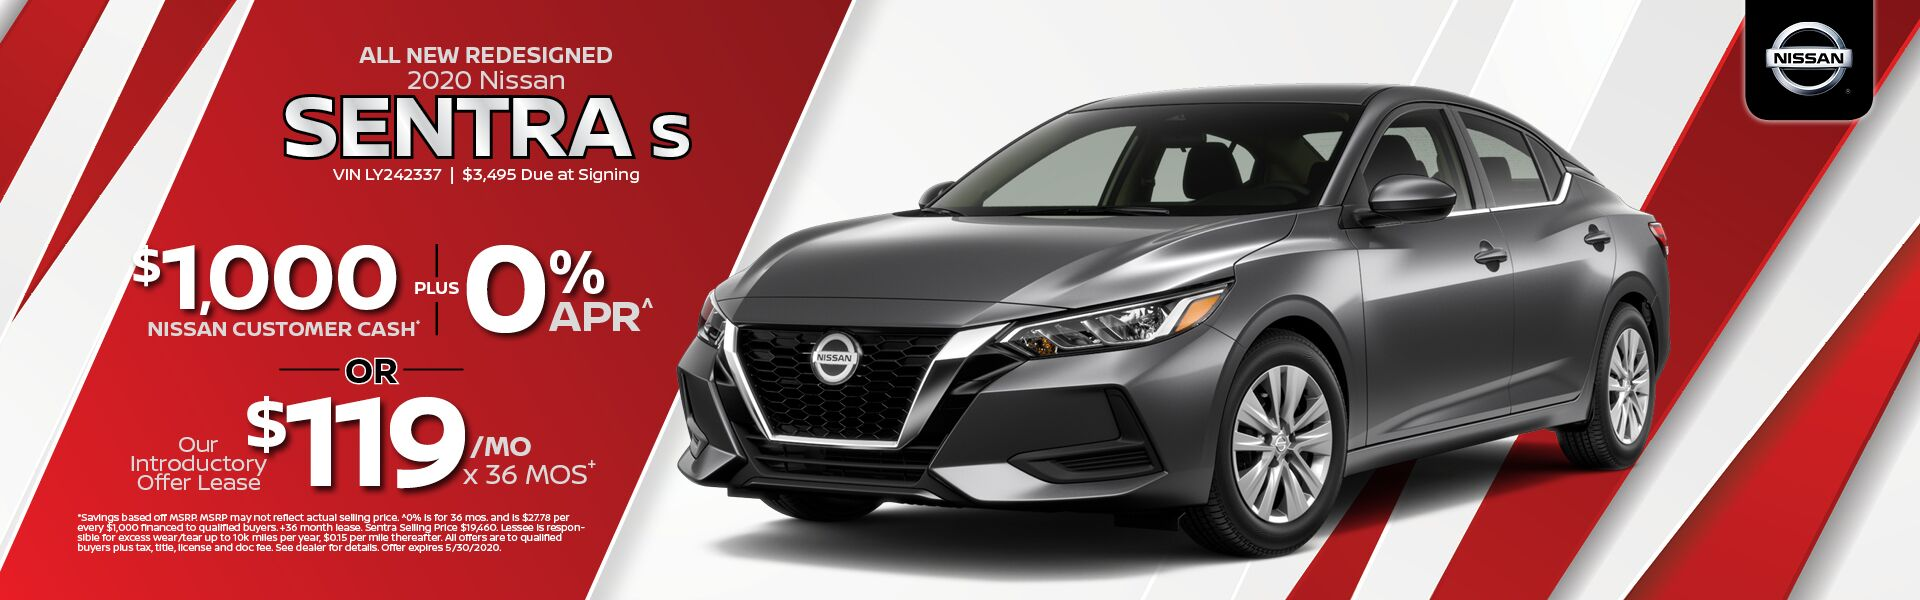 2020 Nissan Sentra $1,000 Nissan Customer Cash PLUS 0% APR